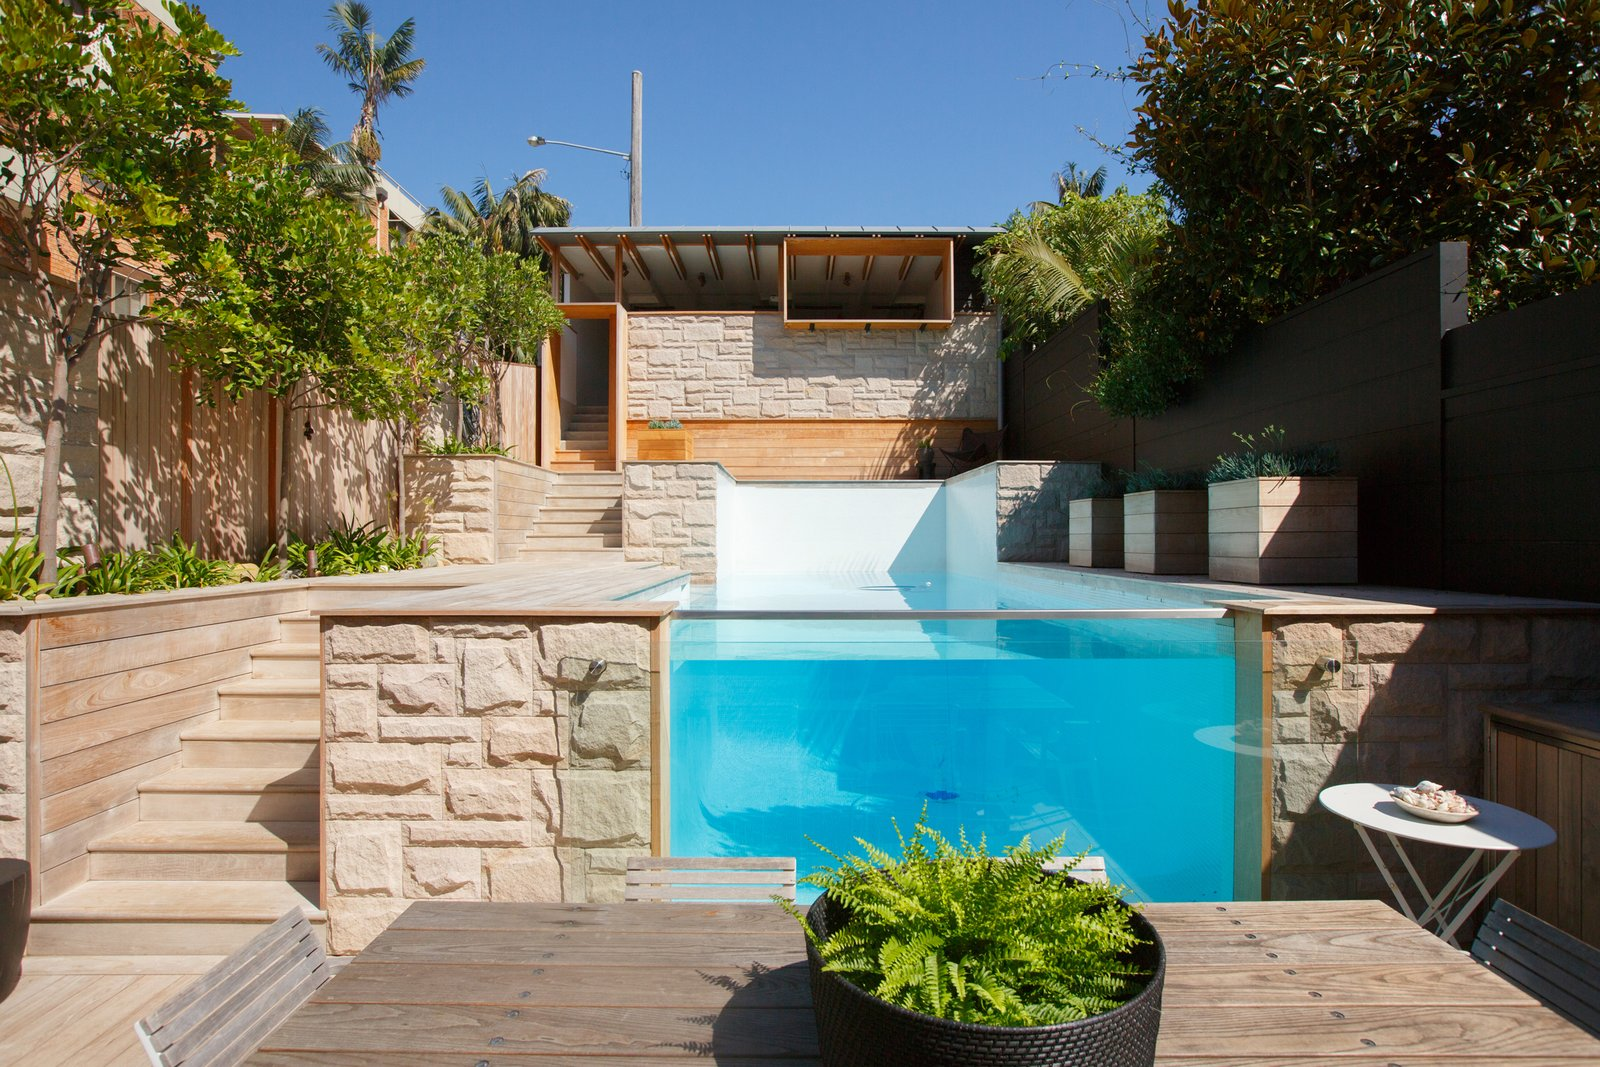 Plans For a Simple Carport Evolve Into a Rear Addition and See-Through Pool